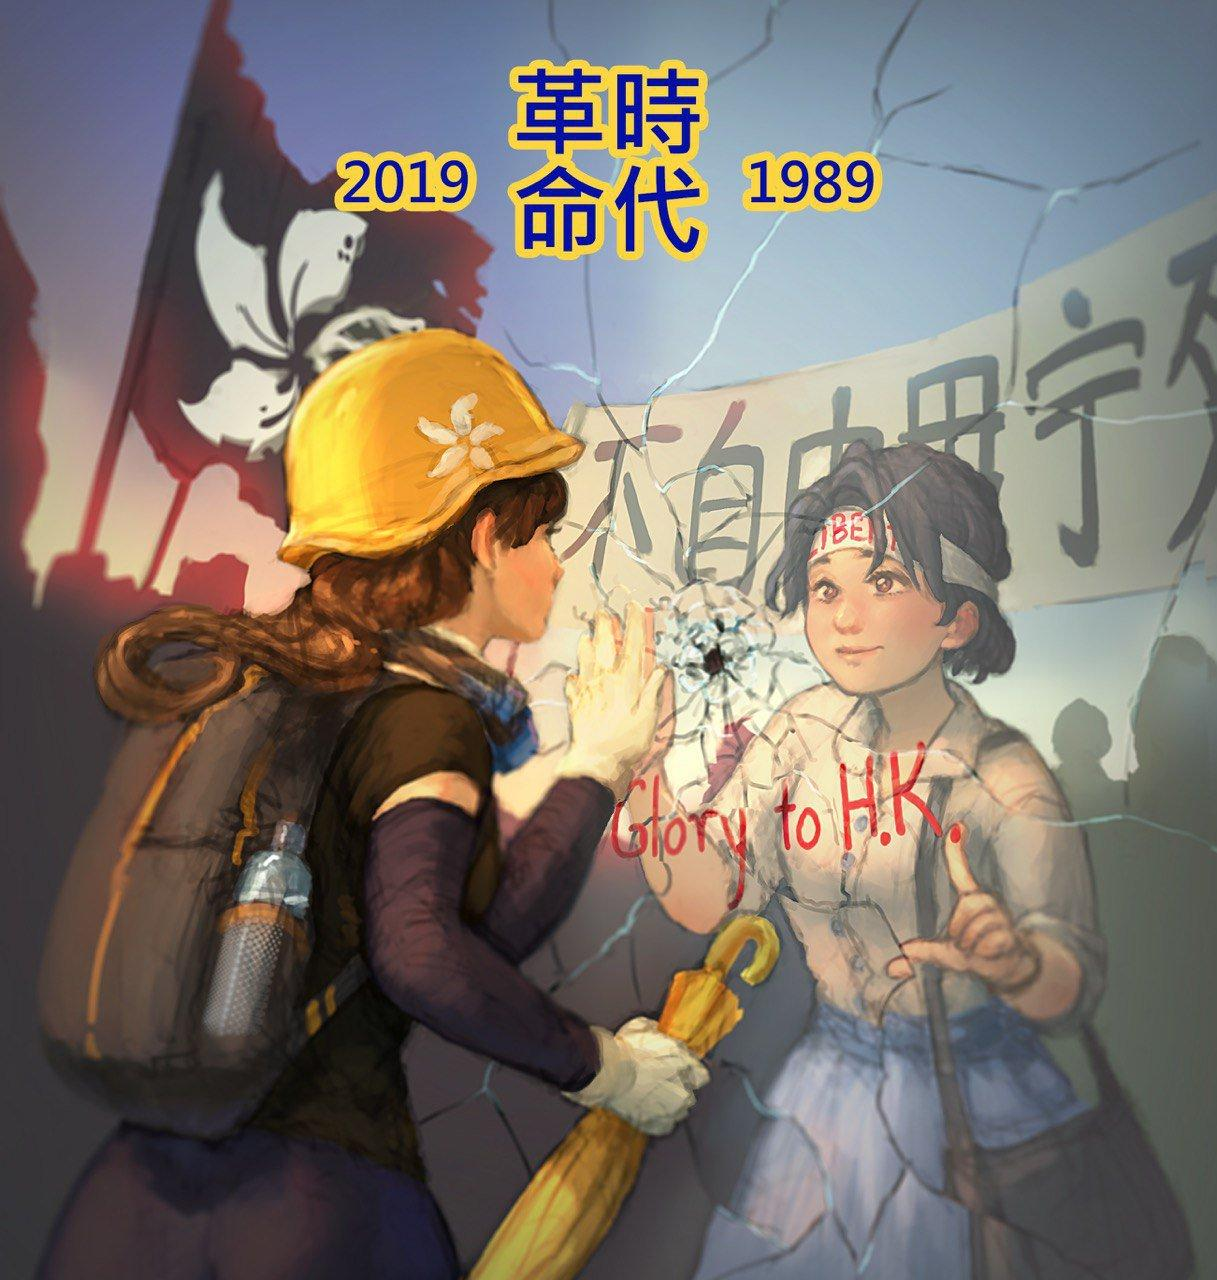 A piece of artwork by a supporter of democracy in Hong Kong linking the anti-extradition bill protests to the pro-democracy movement in Beijing in 1989. (Image: via Reddit)